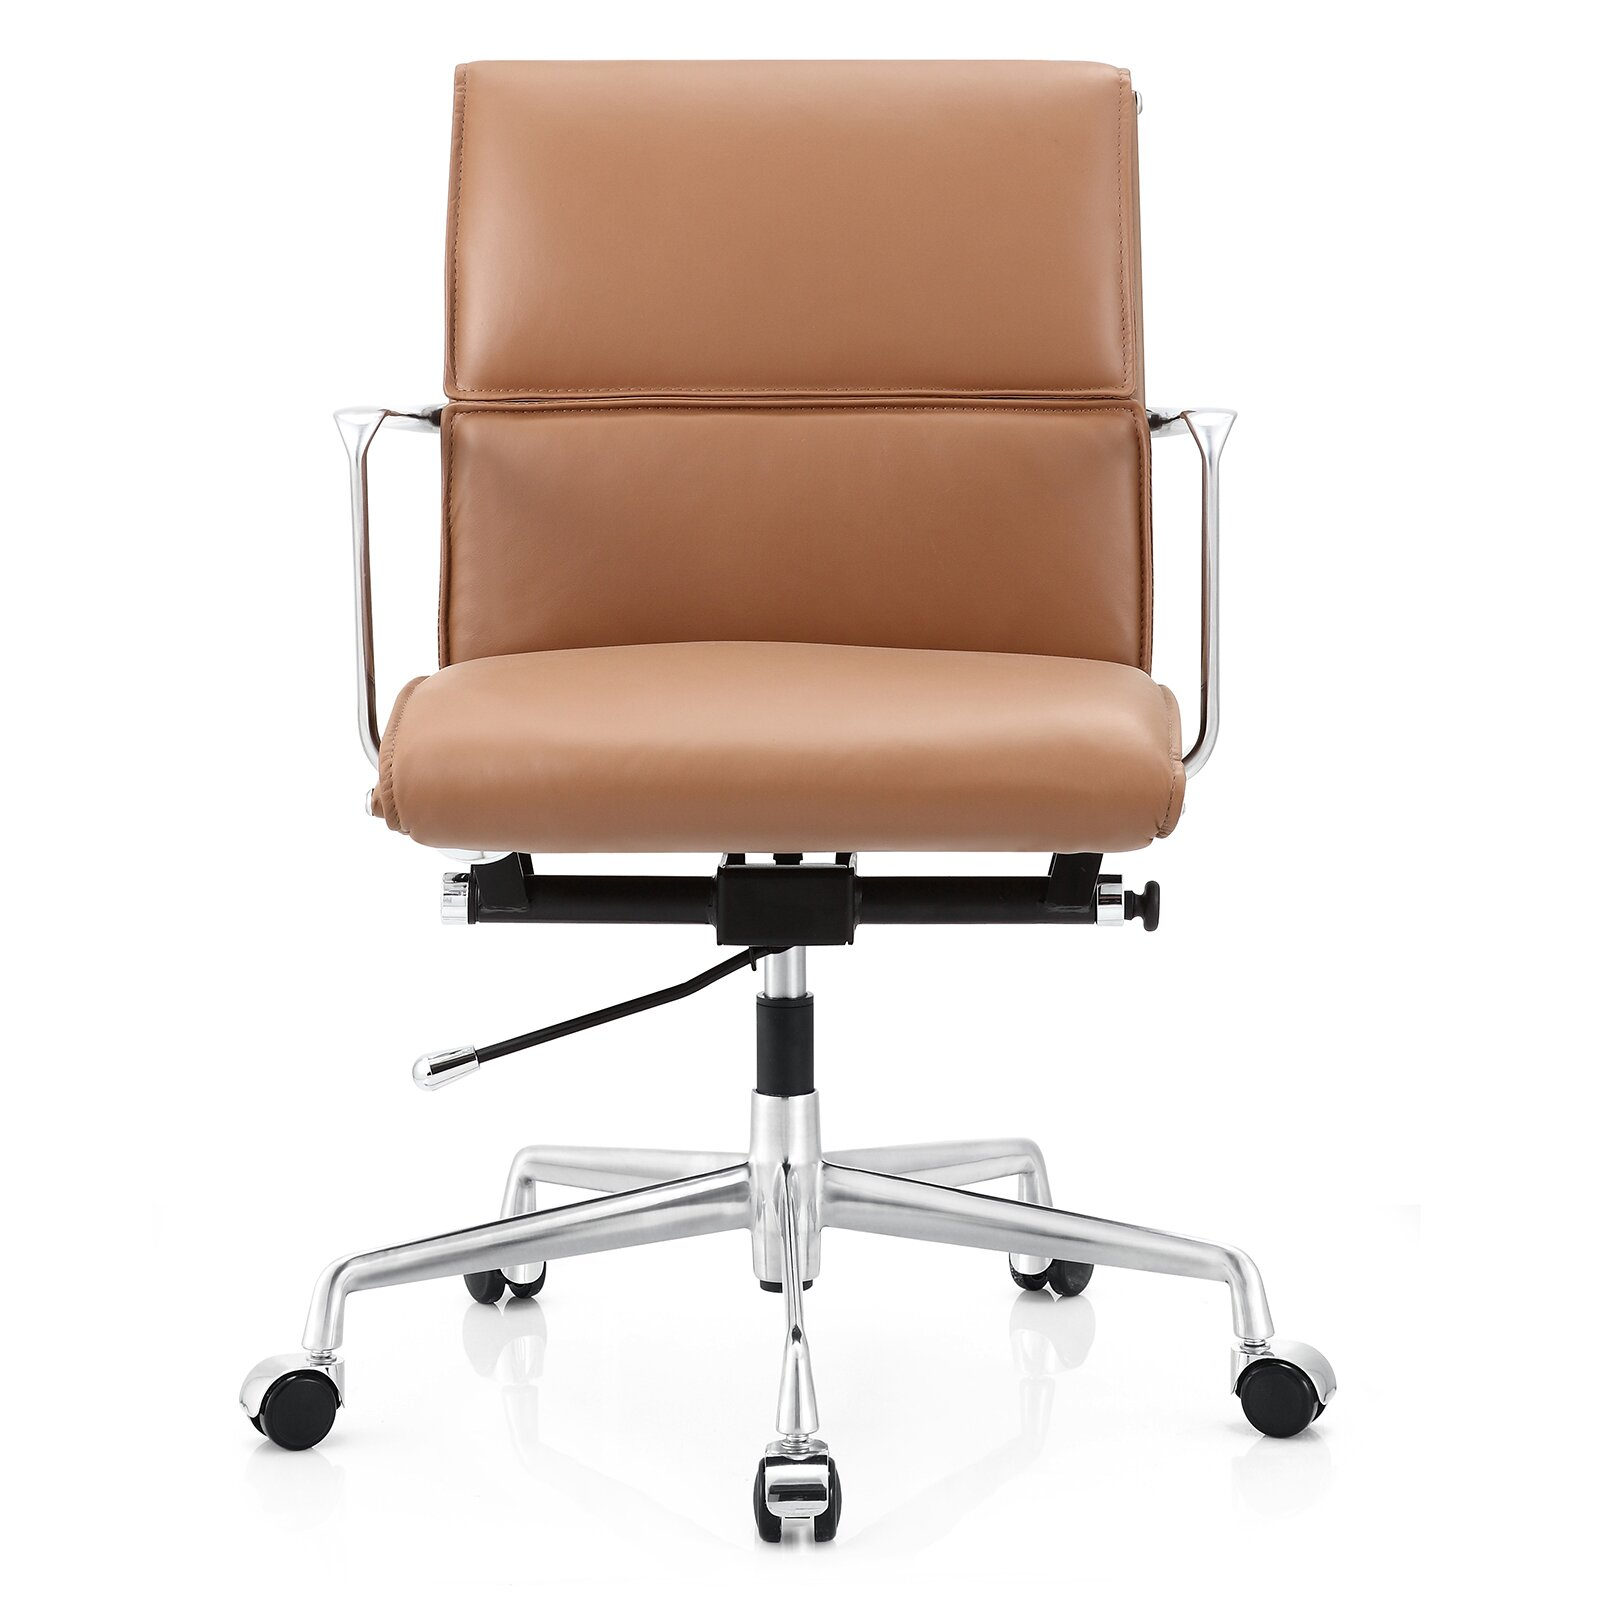 Tan leather office chair - Meelano Leather Desk Chair